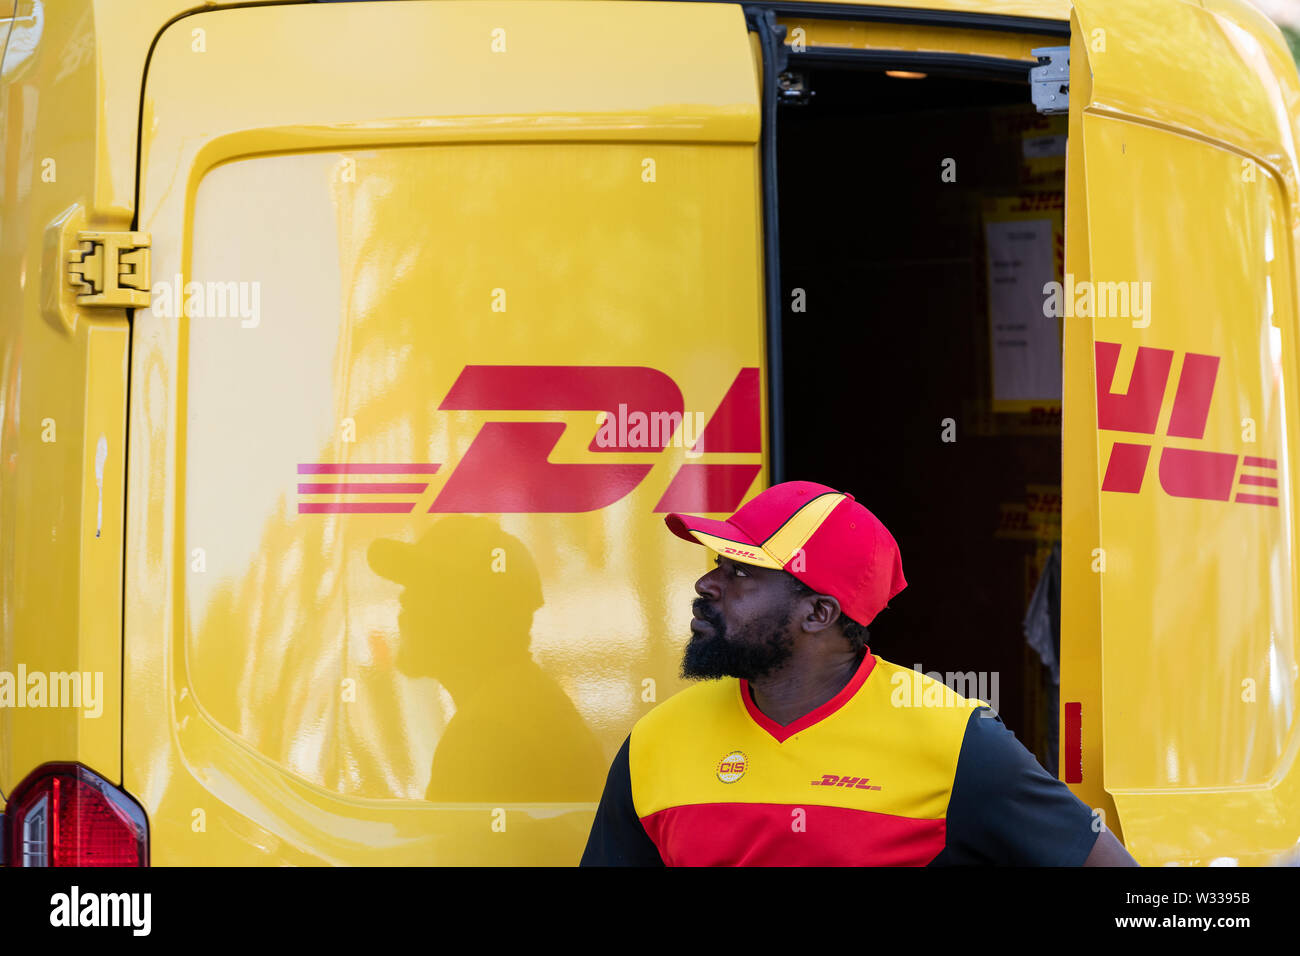 London, UK - September 13, 2018: Closeup of DHL delivery truck in Chelsea area of city with man opening back door on street outside - Stock Image